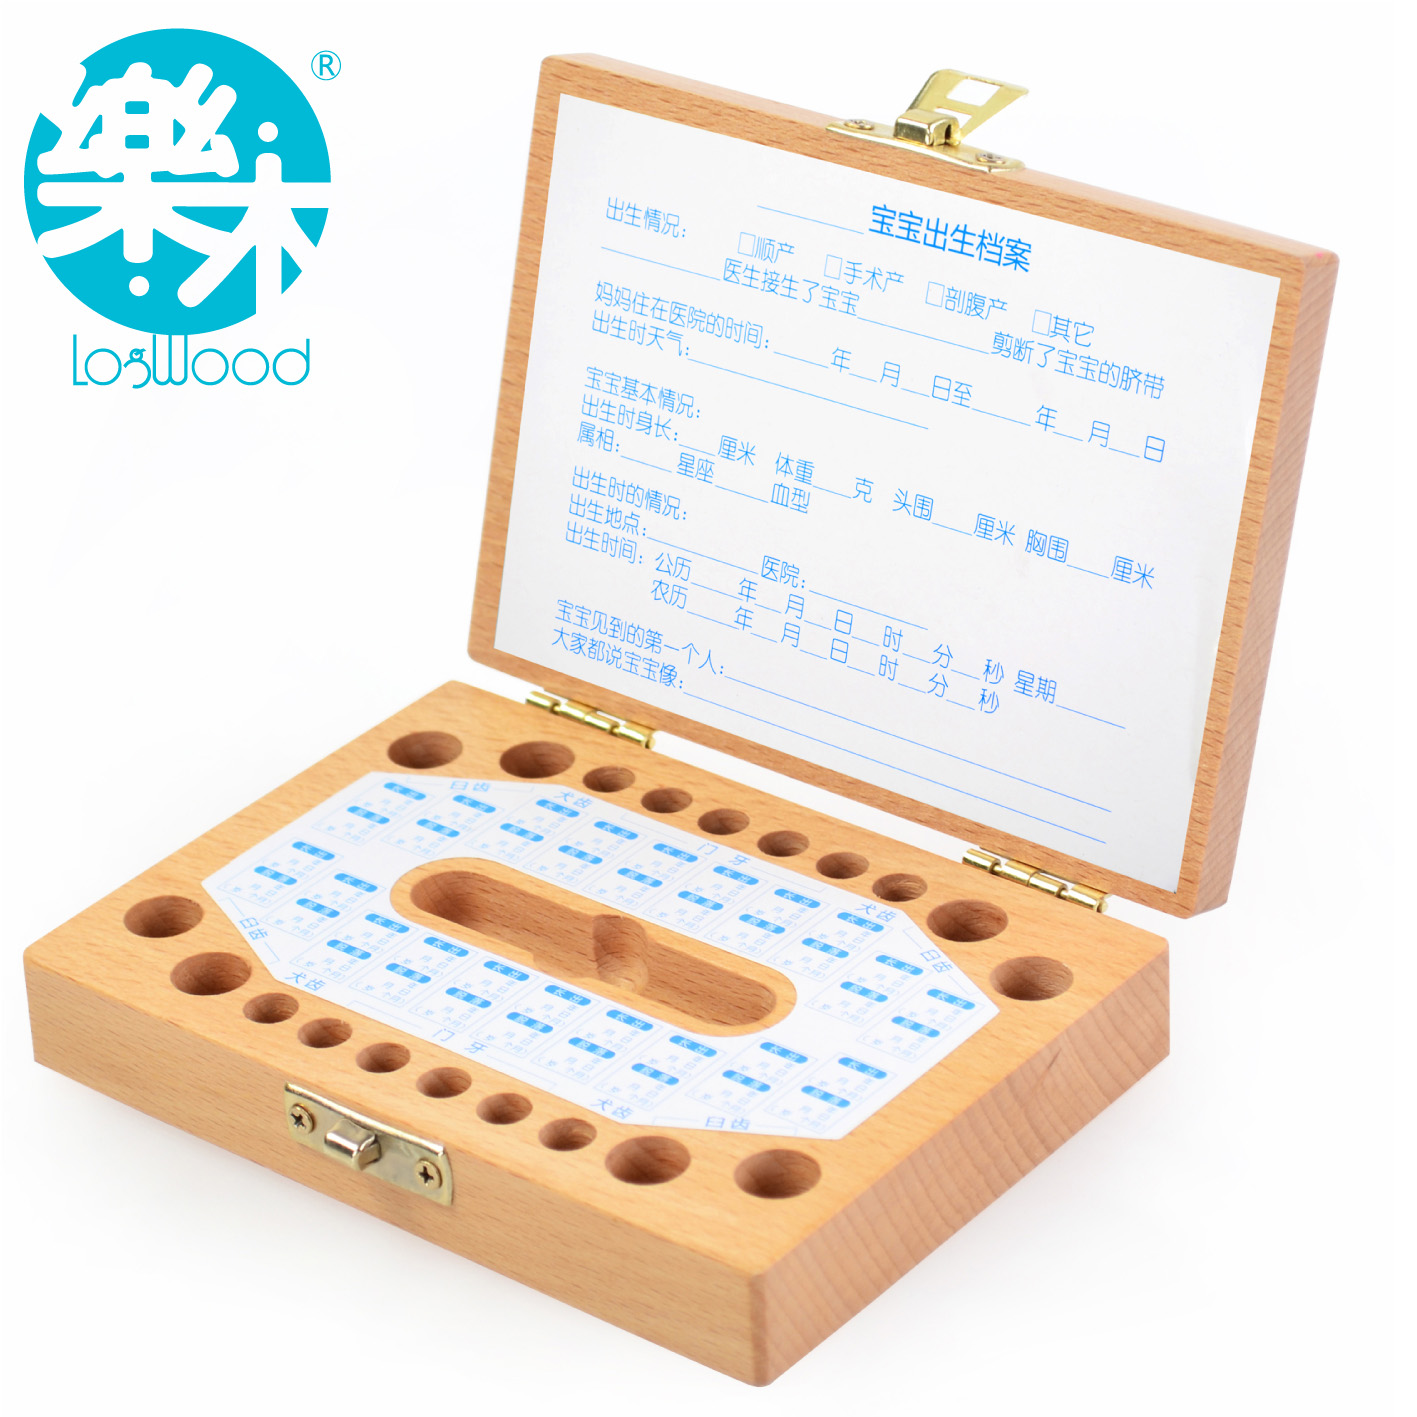 International Children ' s Day gift wooden Baby Keepsake wooden lanugo deciduous save box baby personalized gifts